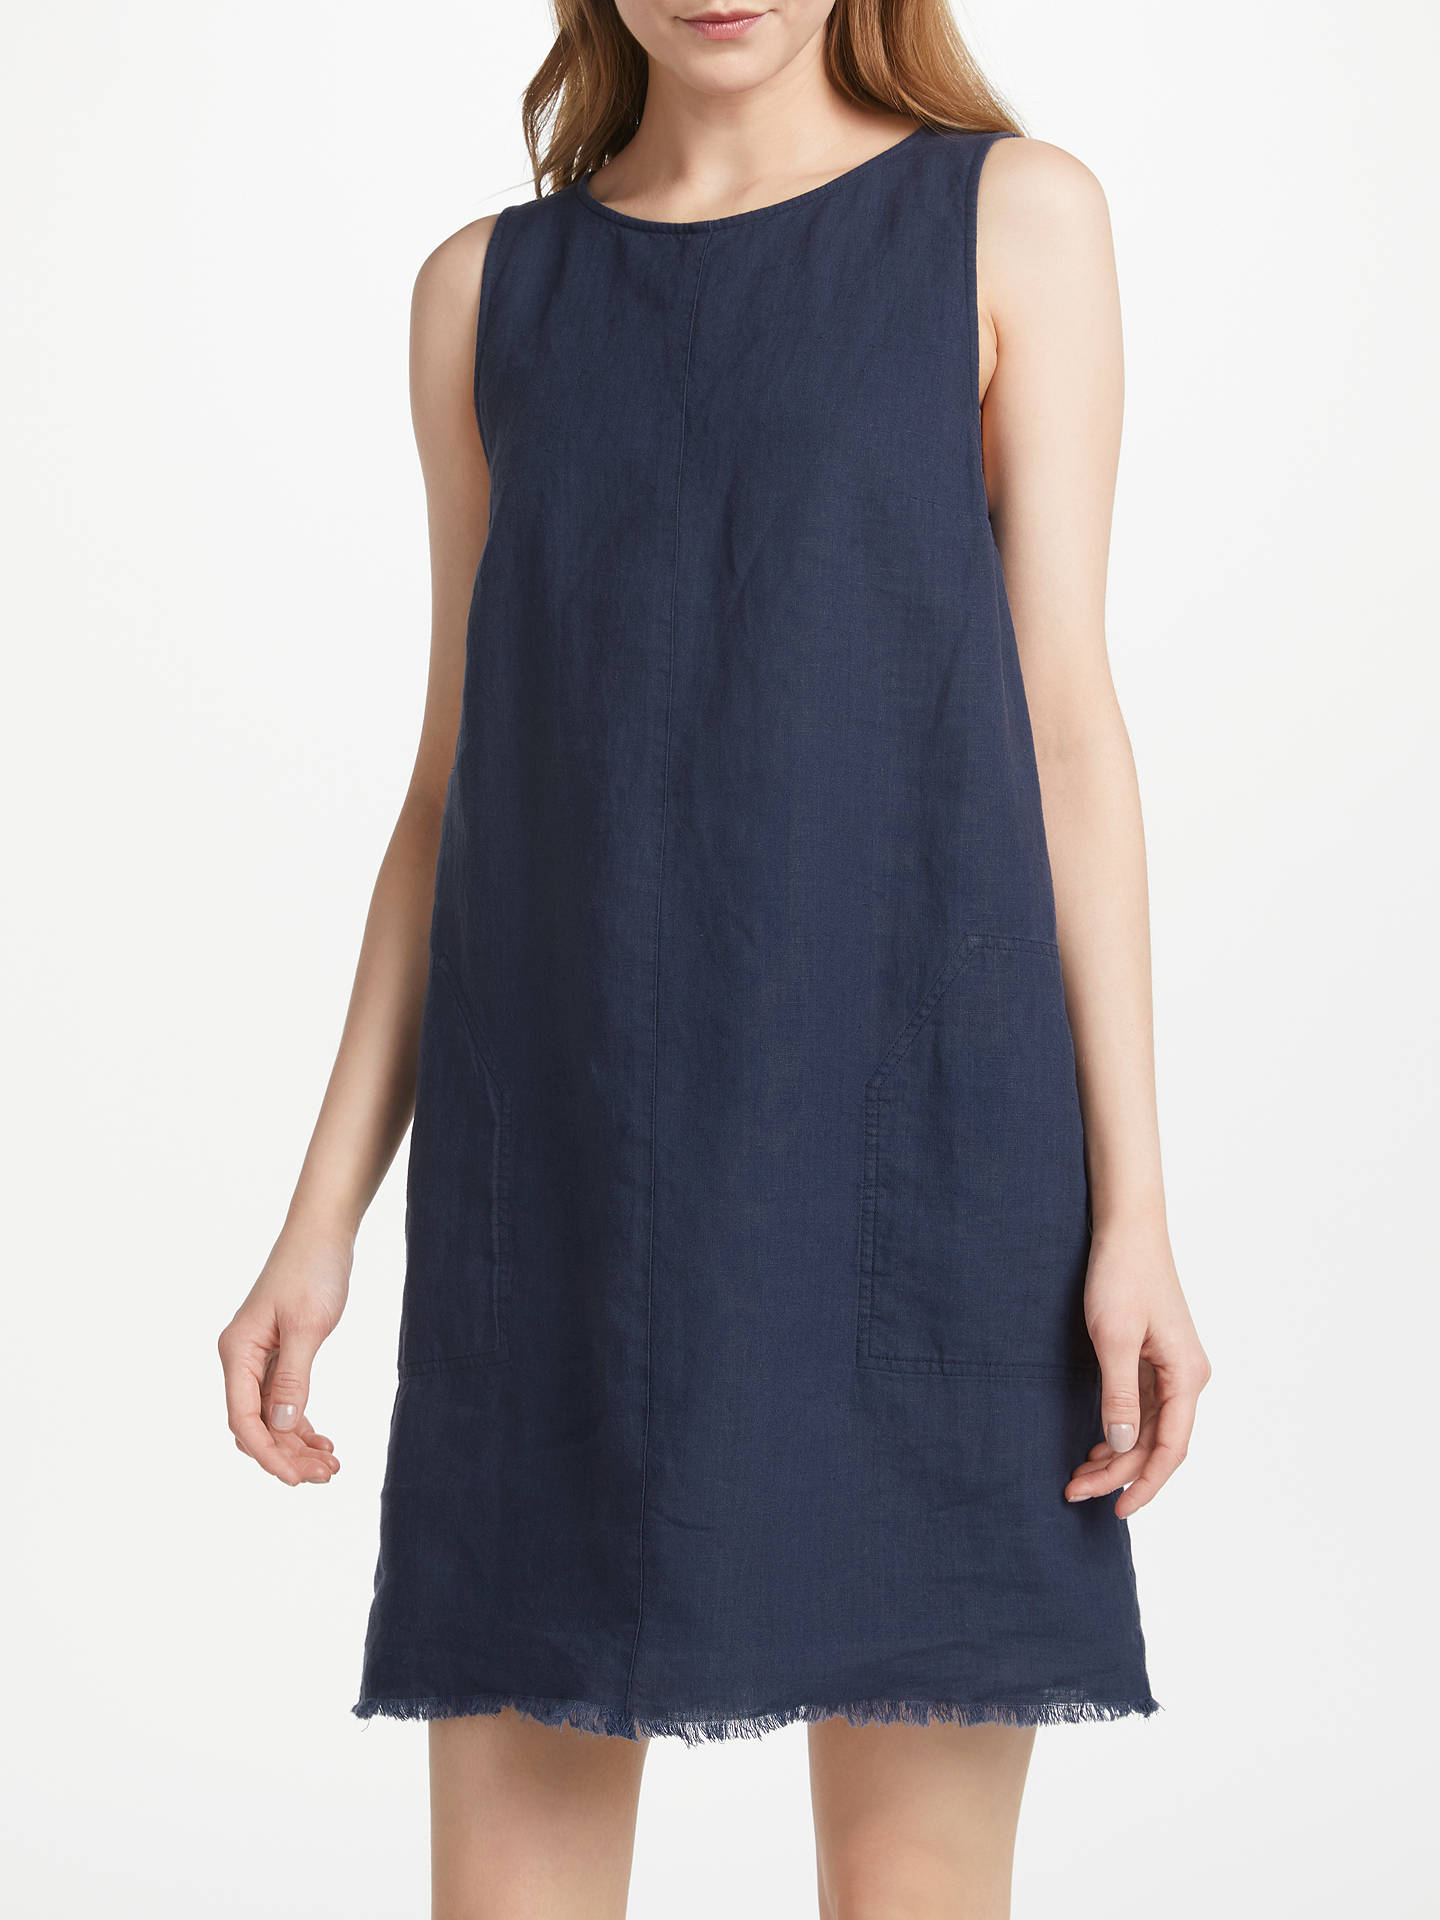 BuyGreat Plains Natural Cotton Linen Dress, Navy, XS Online at johnlewis.com